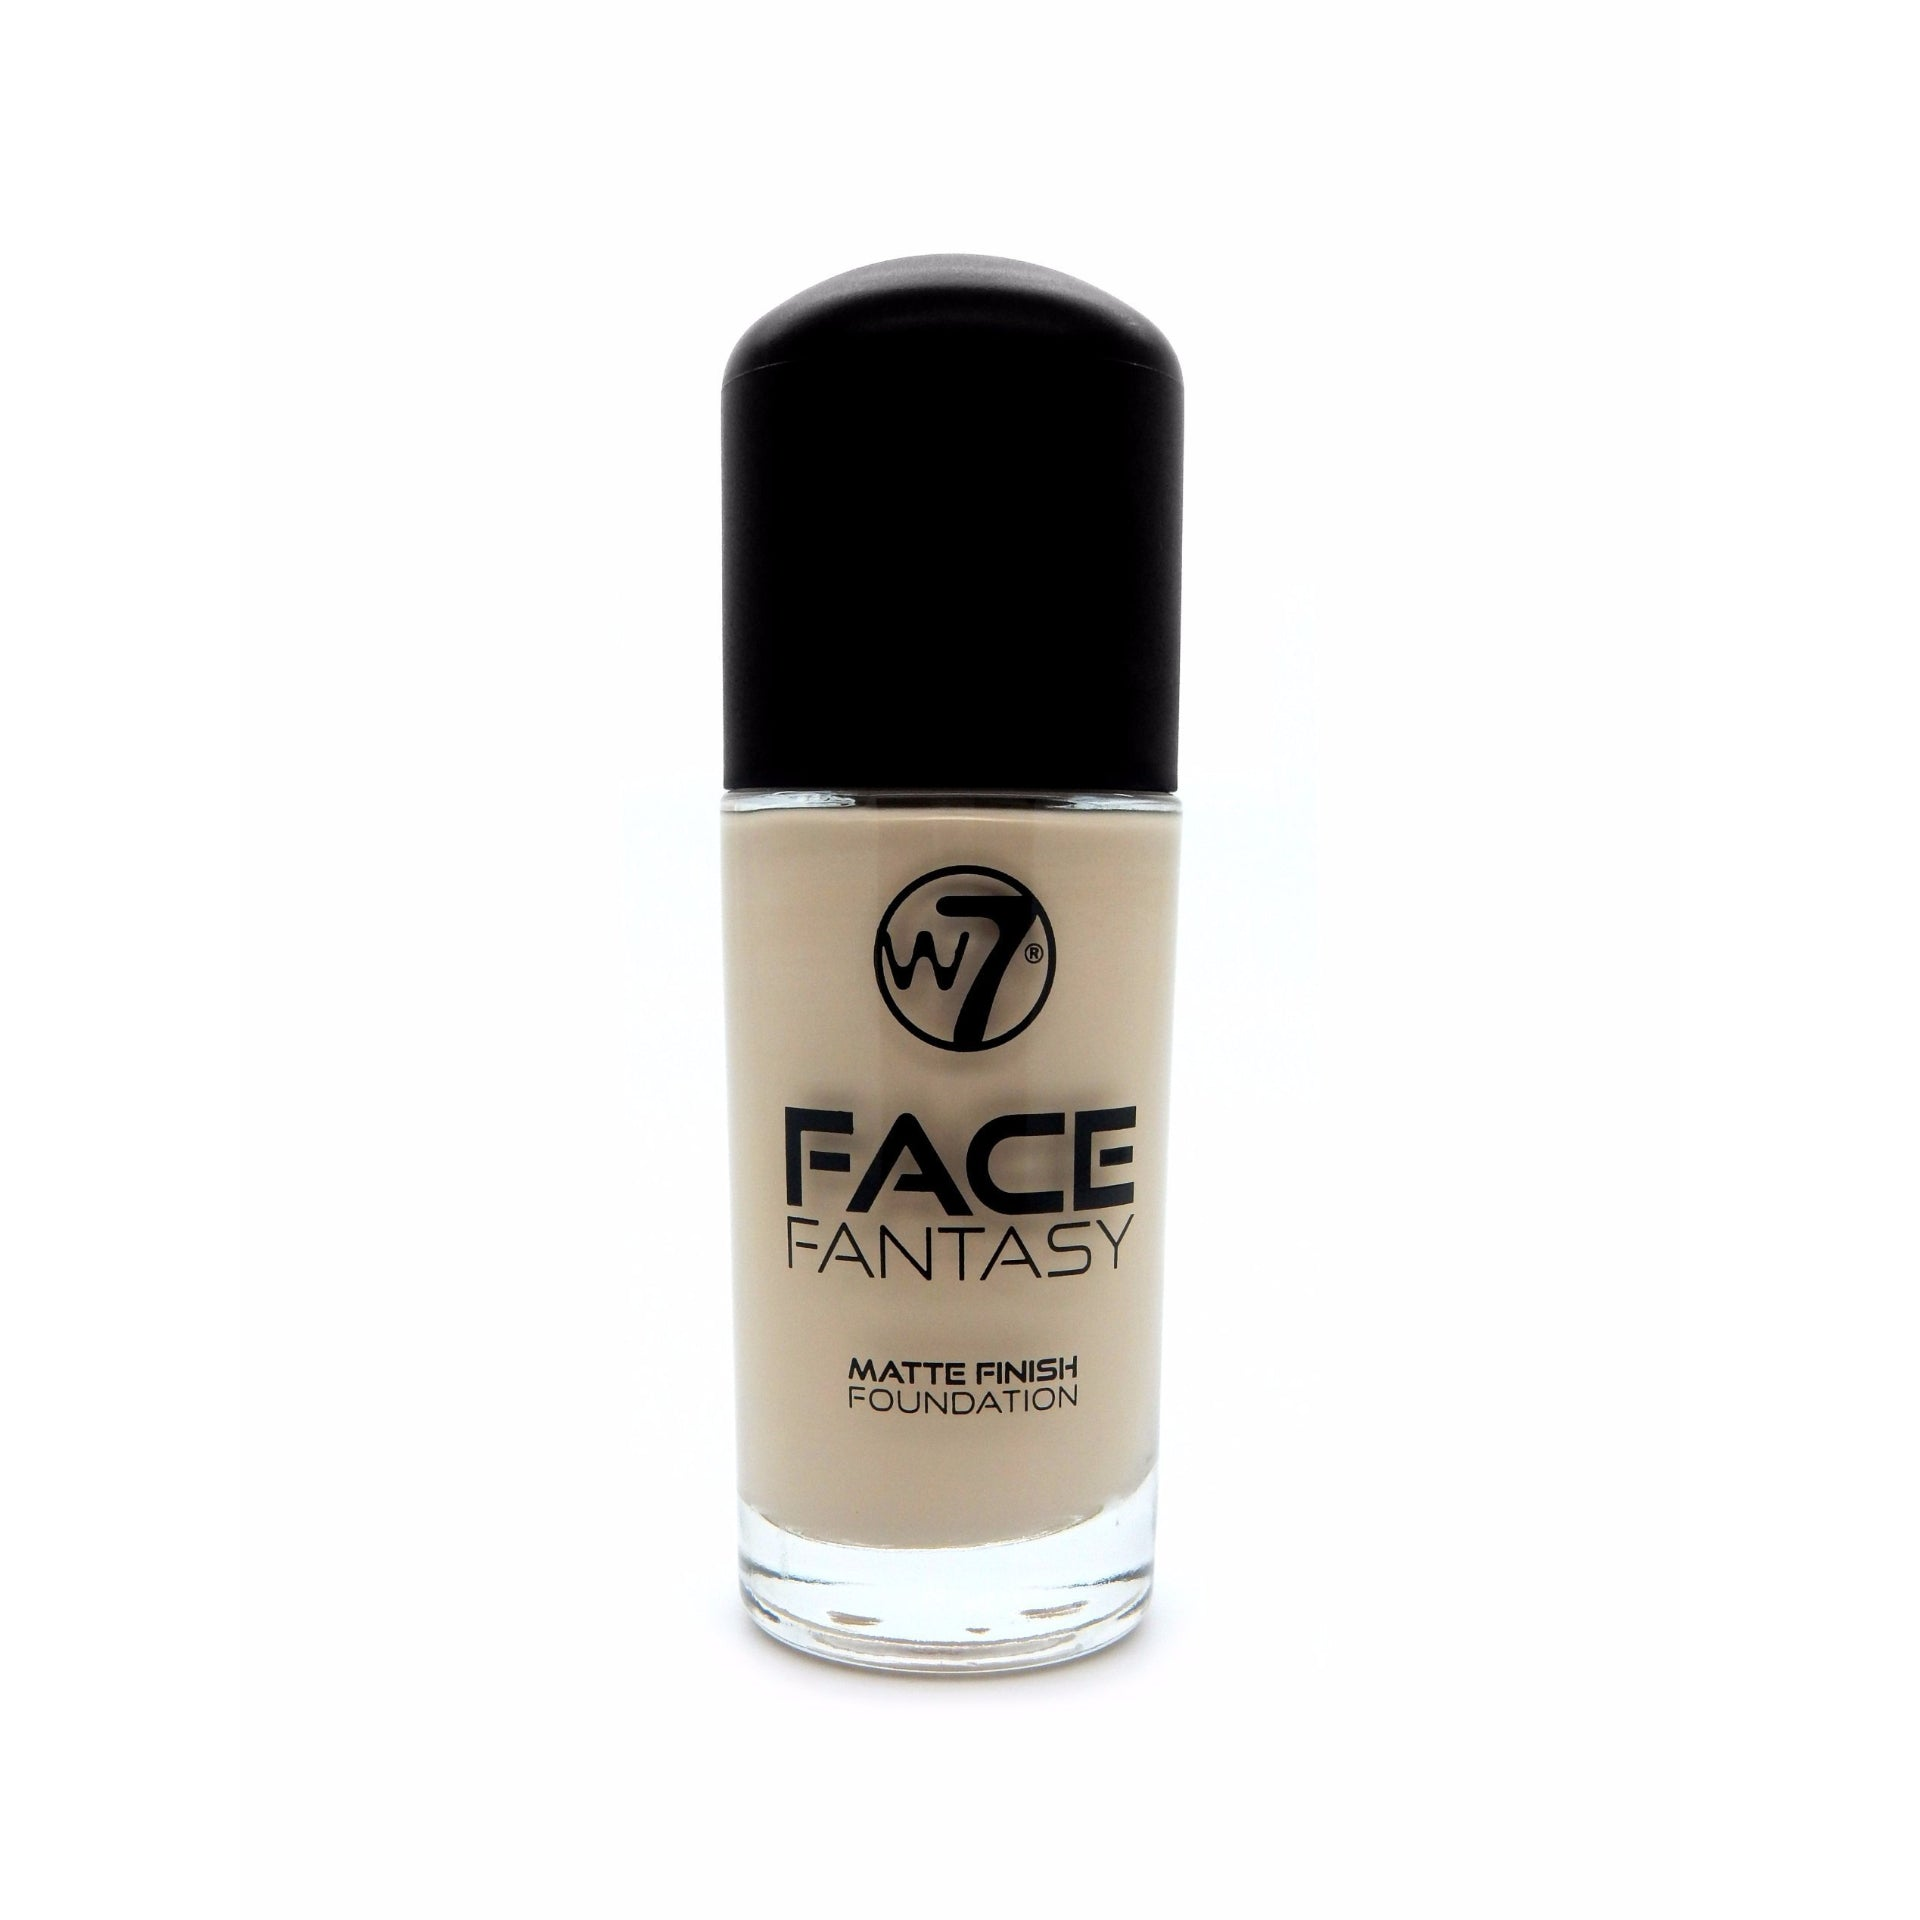 W7 Face Fantasy Matte Finish Foundation | Sand